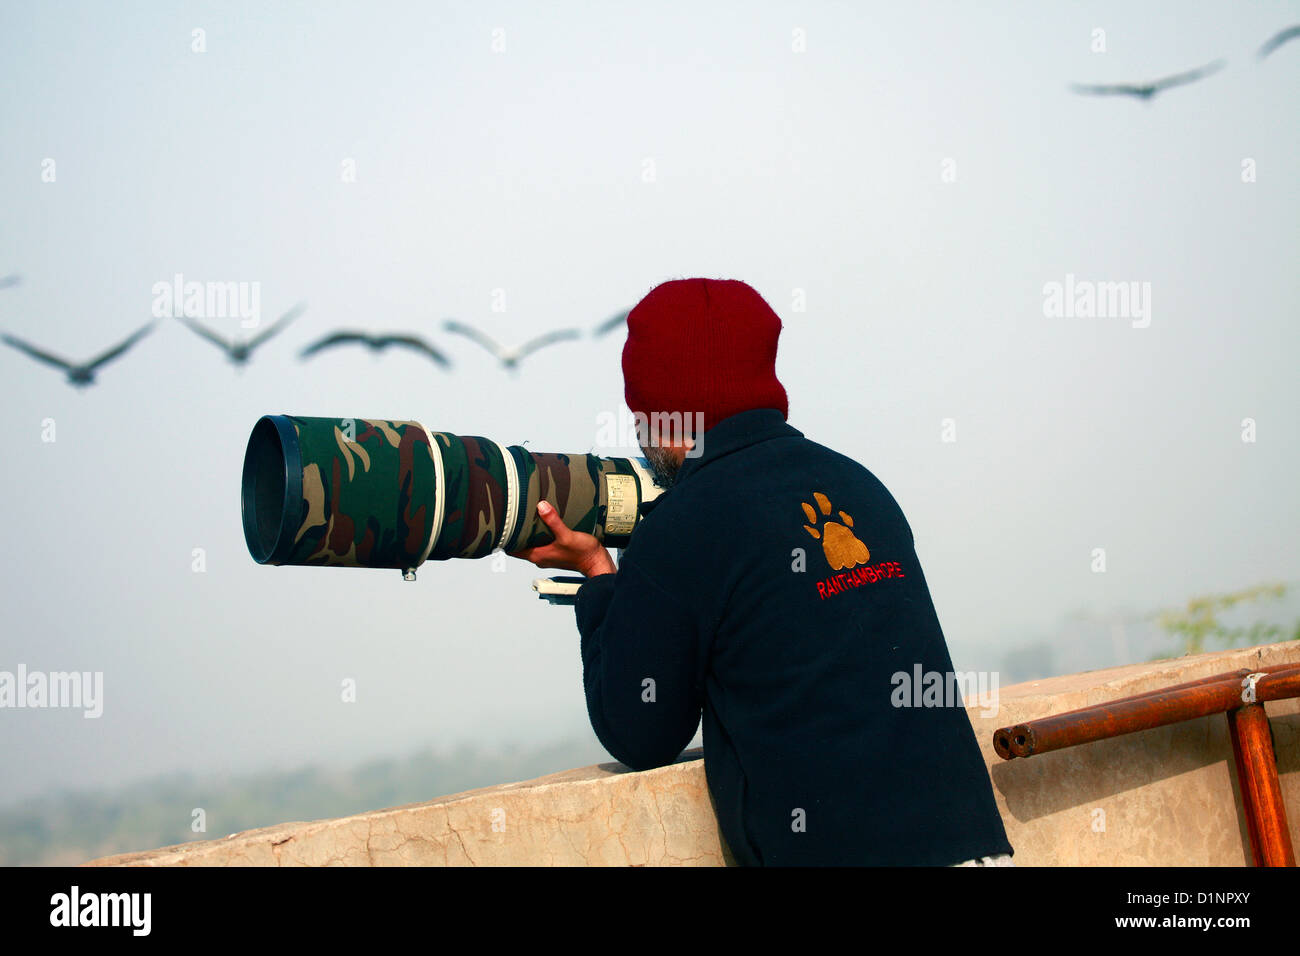 Professional Photographer - Stock Image